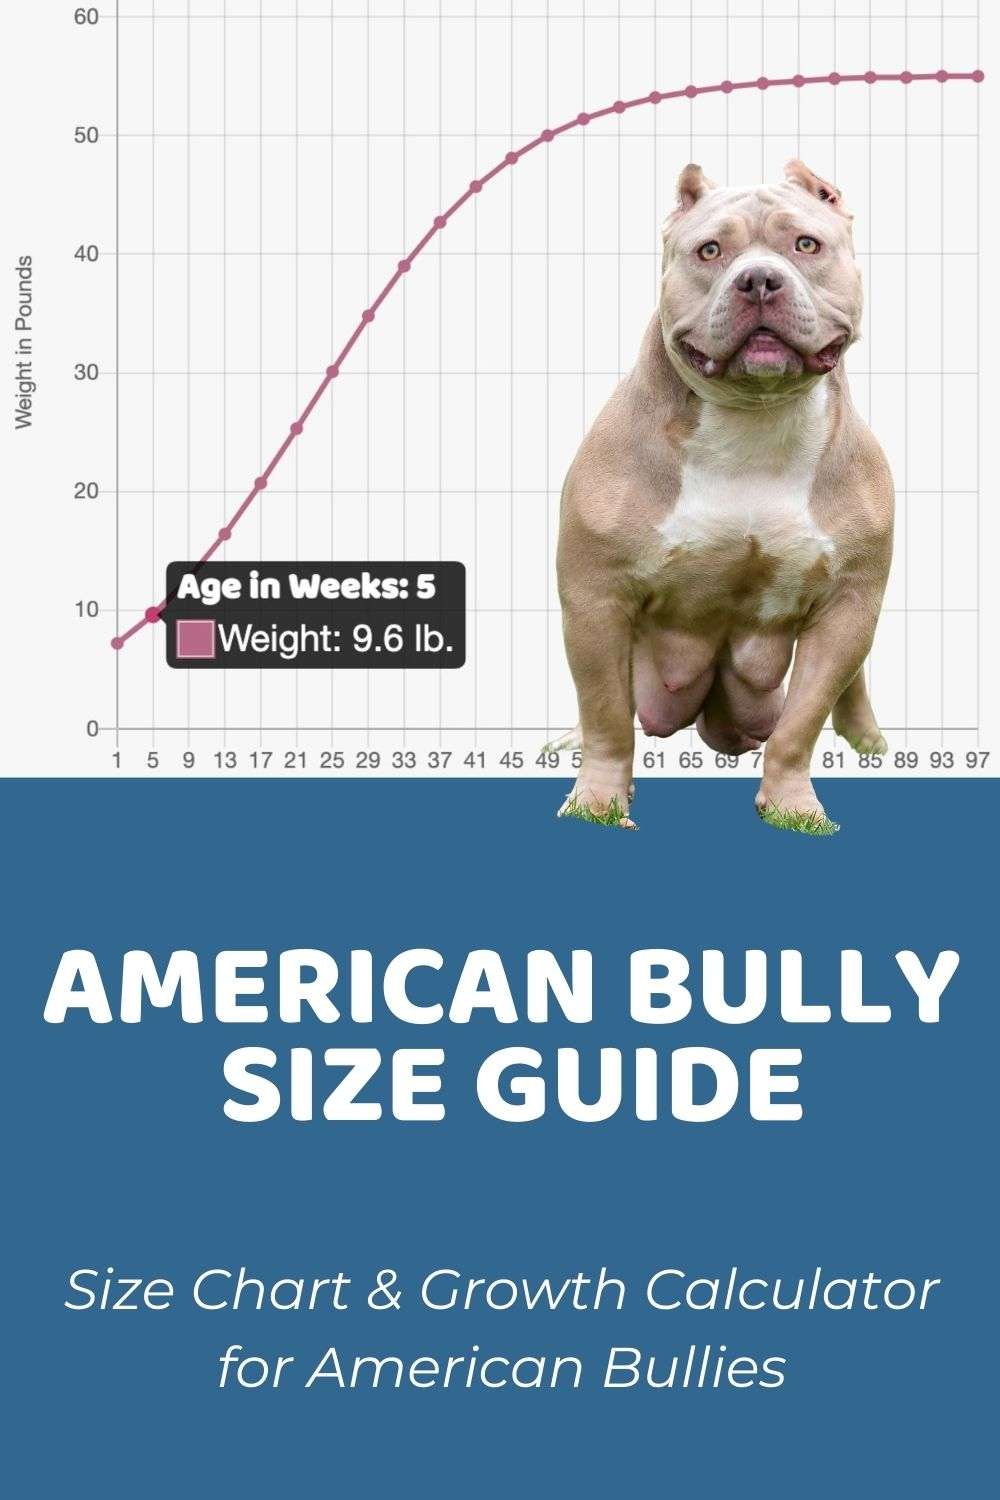 American Bully Size Guide How Big Does an American Bully Get - Puppy Weight Calculator